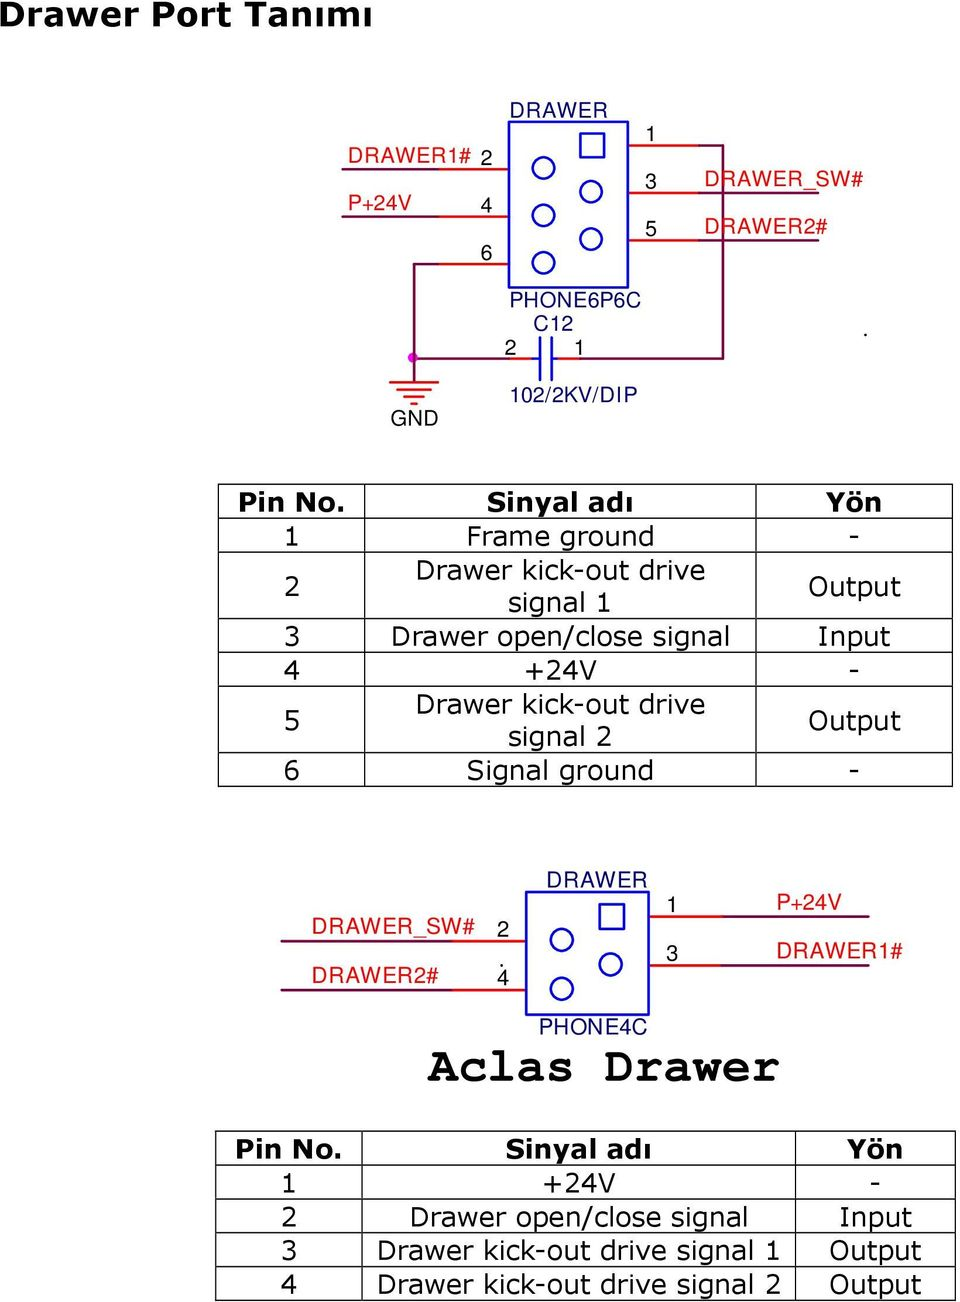 Sinyal adı Yön 1 Frame ground - 2 Drawer kick-out drive signal 1 Output 3 Drawer open/close signal Input 4 +24V - 5 Drawer kick-out